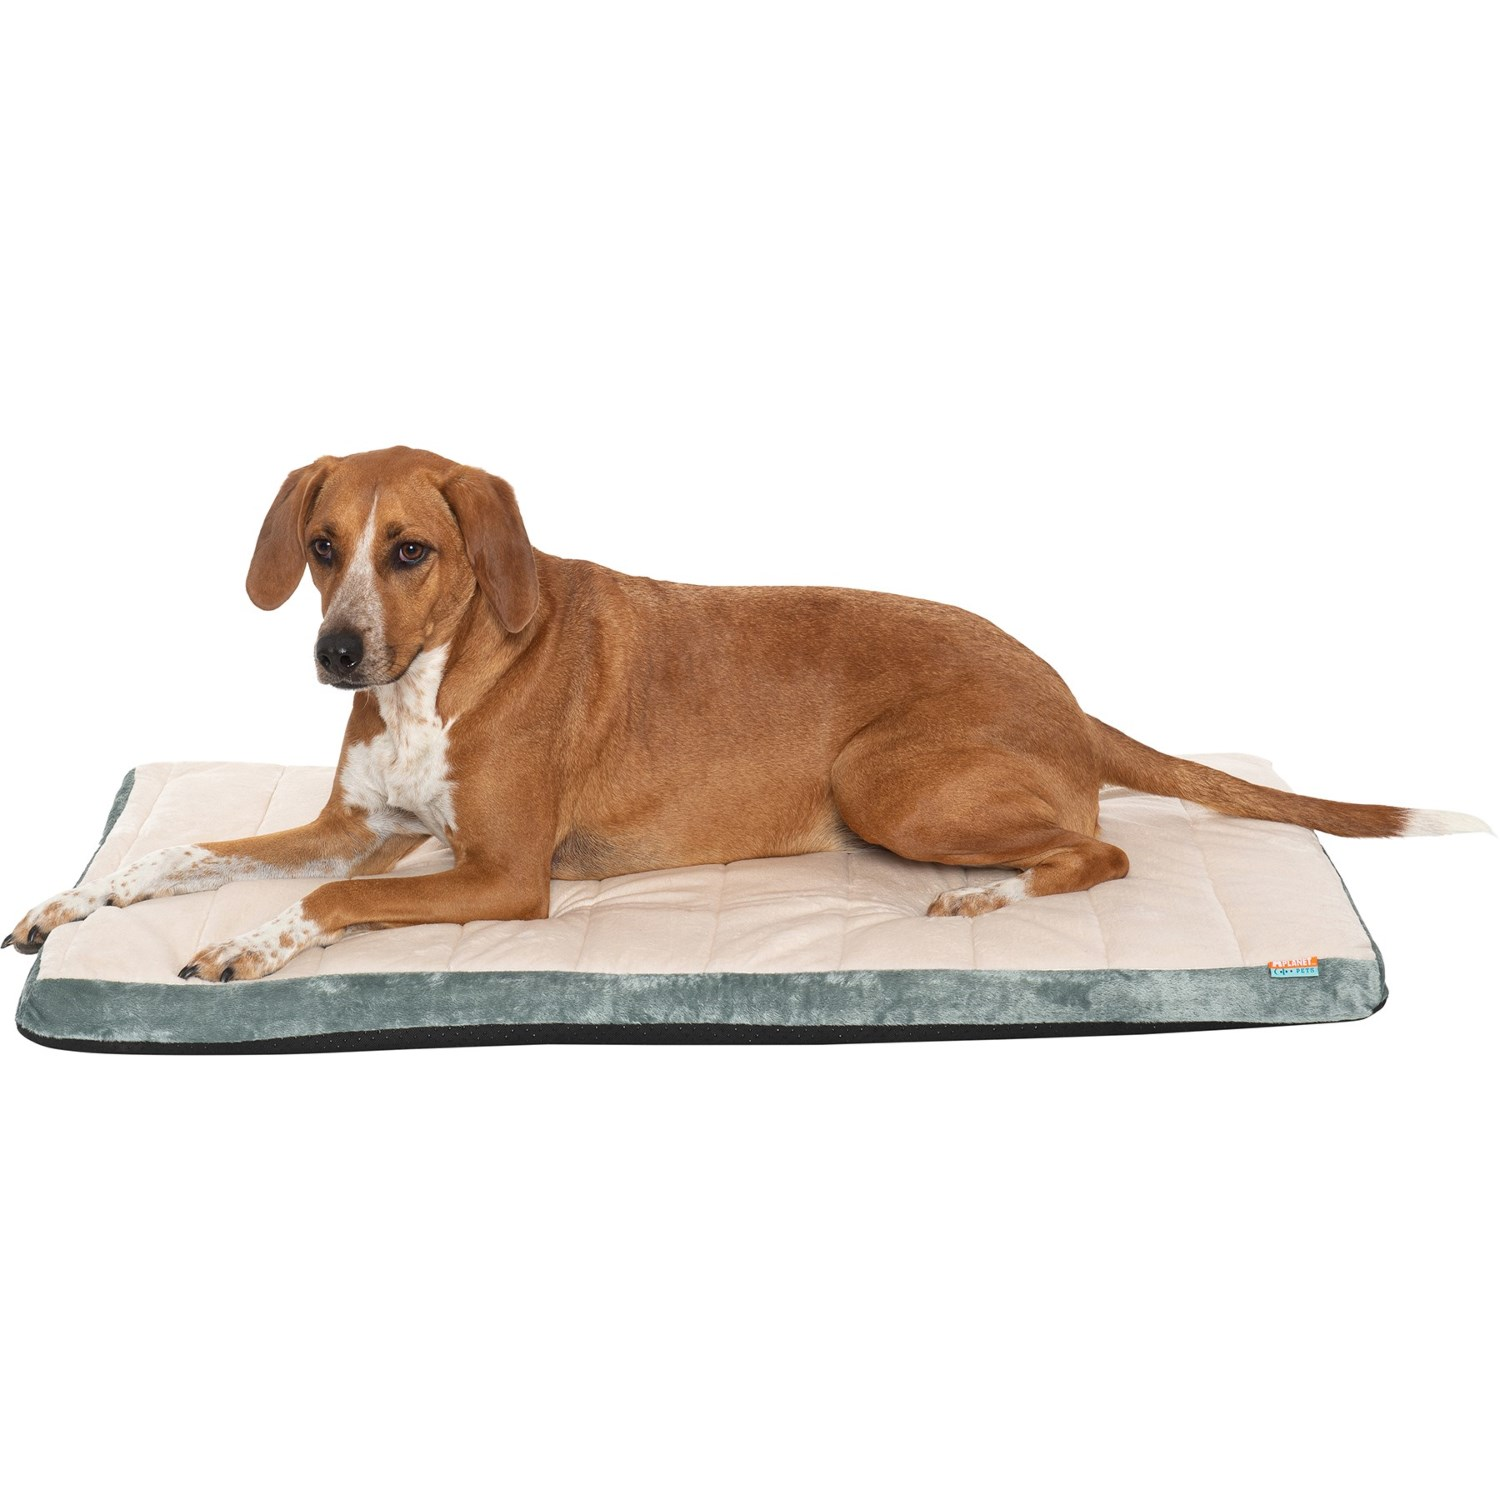 Animal Planet Channel Memory Foam Dog Crate Mat 40x26 Save 25